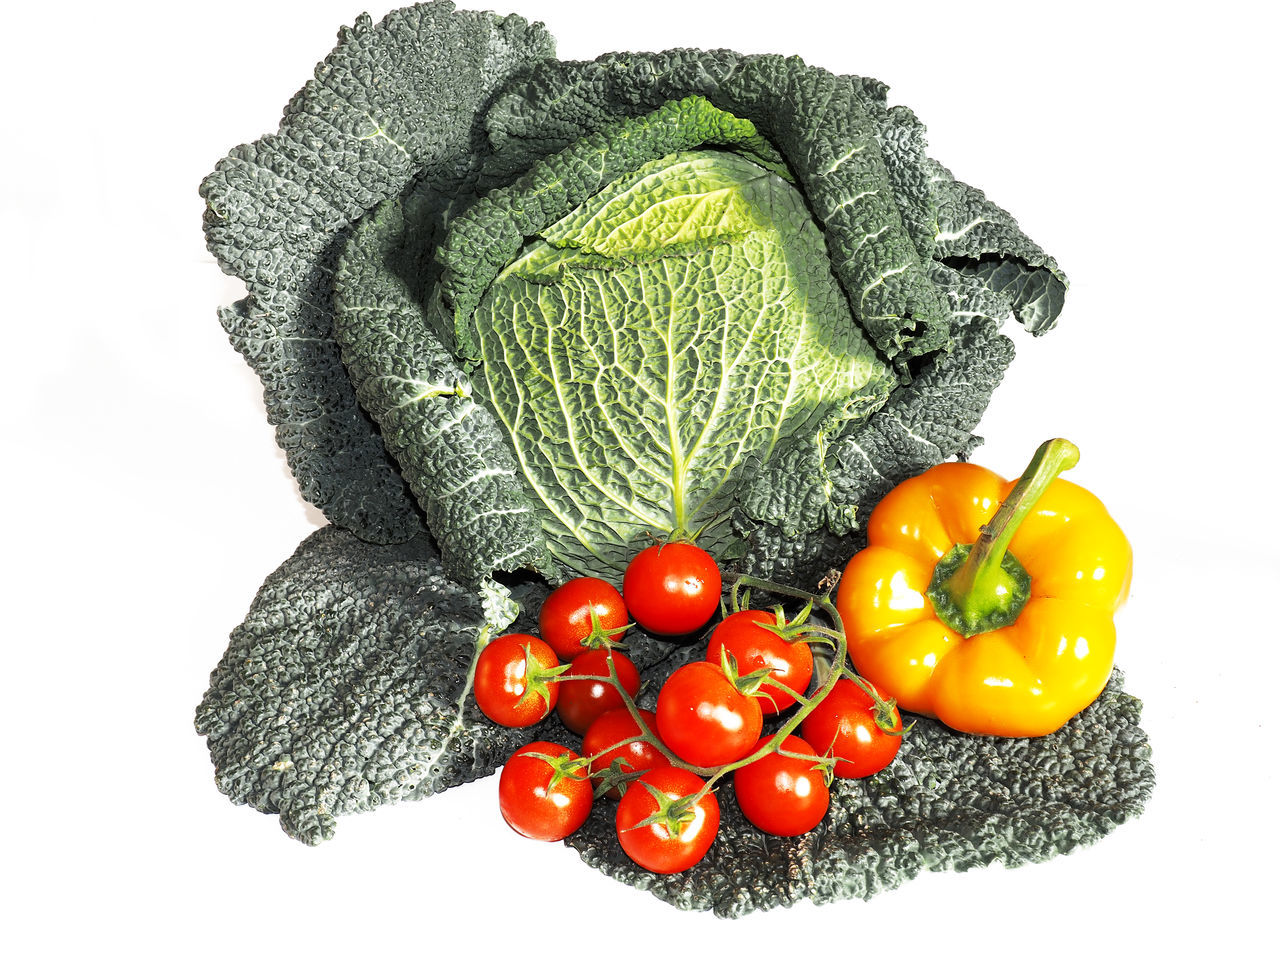 Tomatoes And Orange Bell Pepper With Savoy Cabbage Against White Background